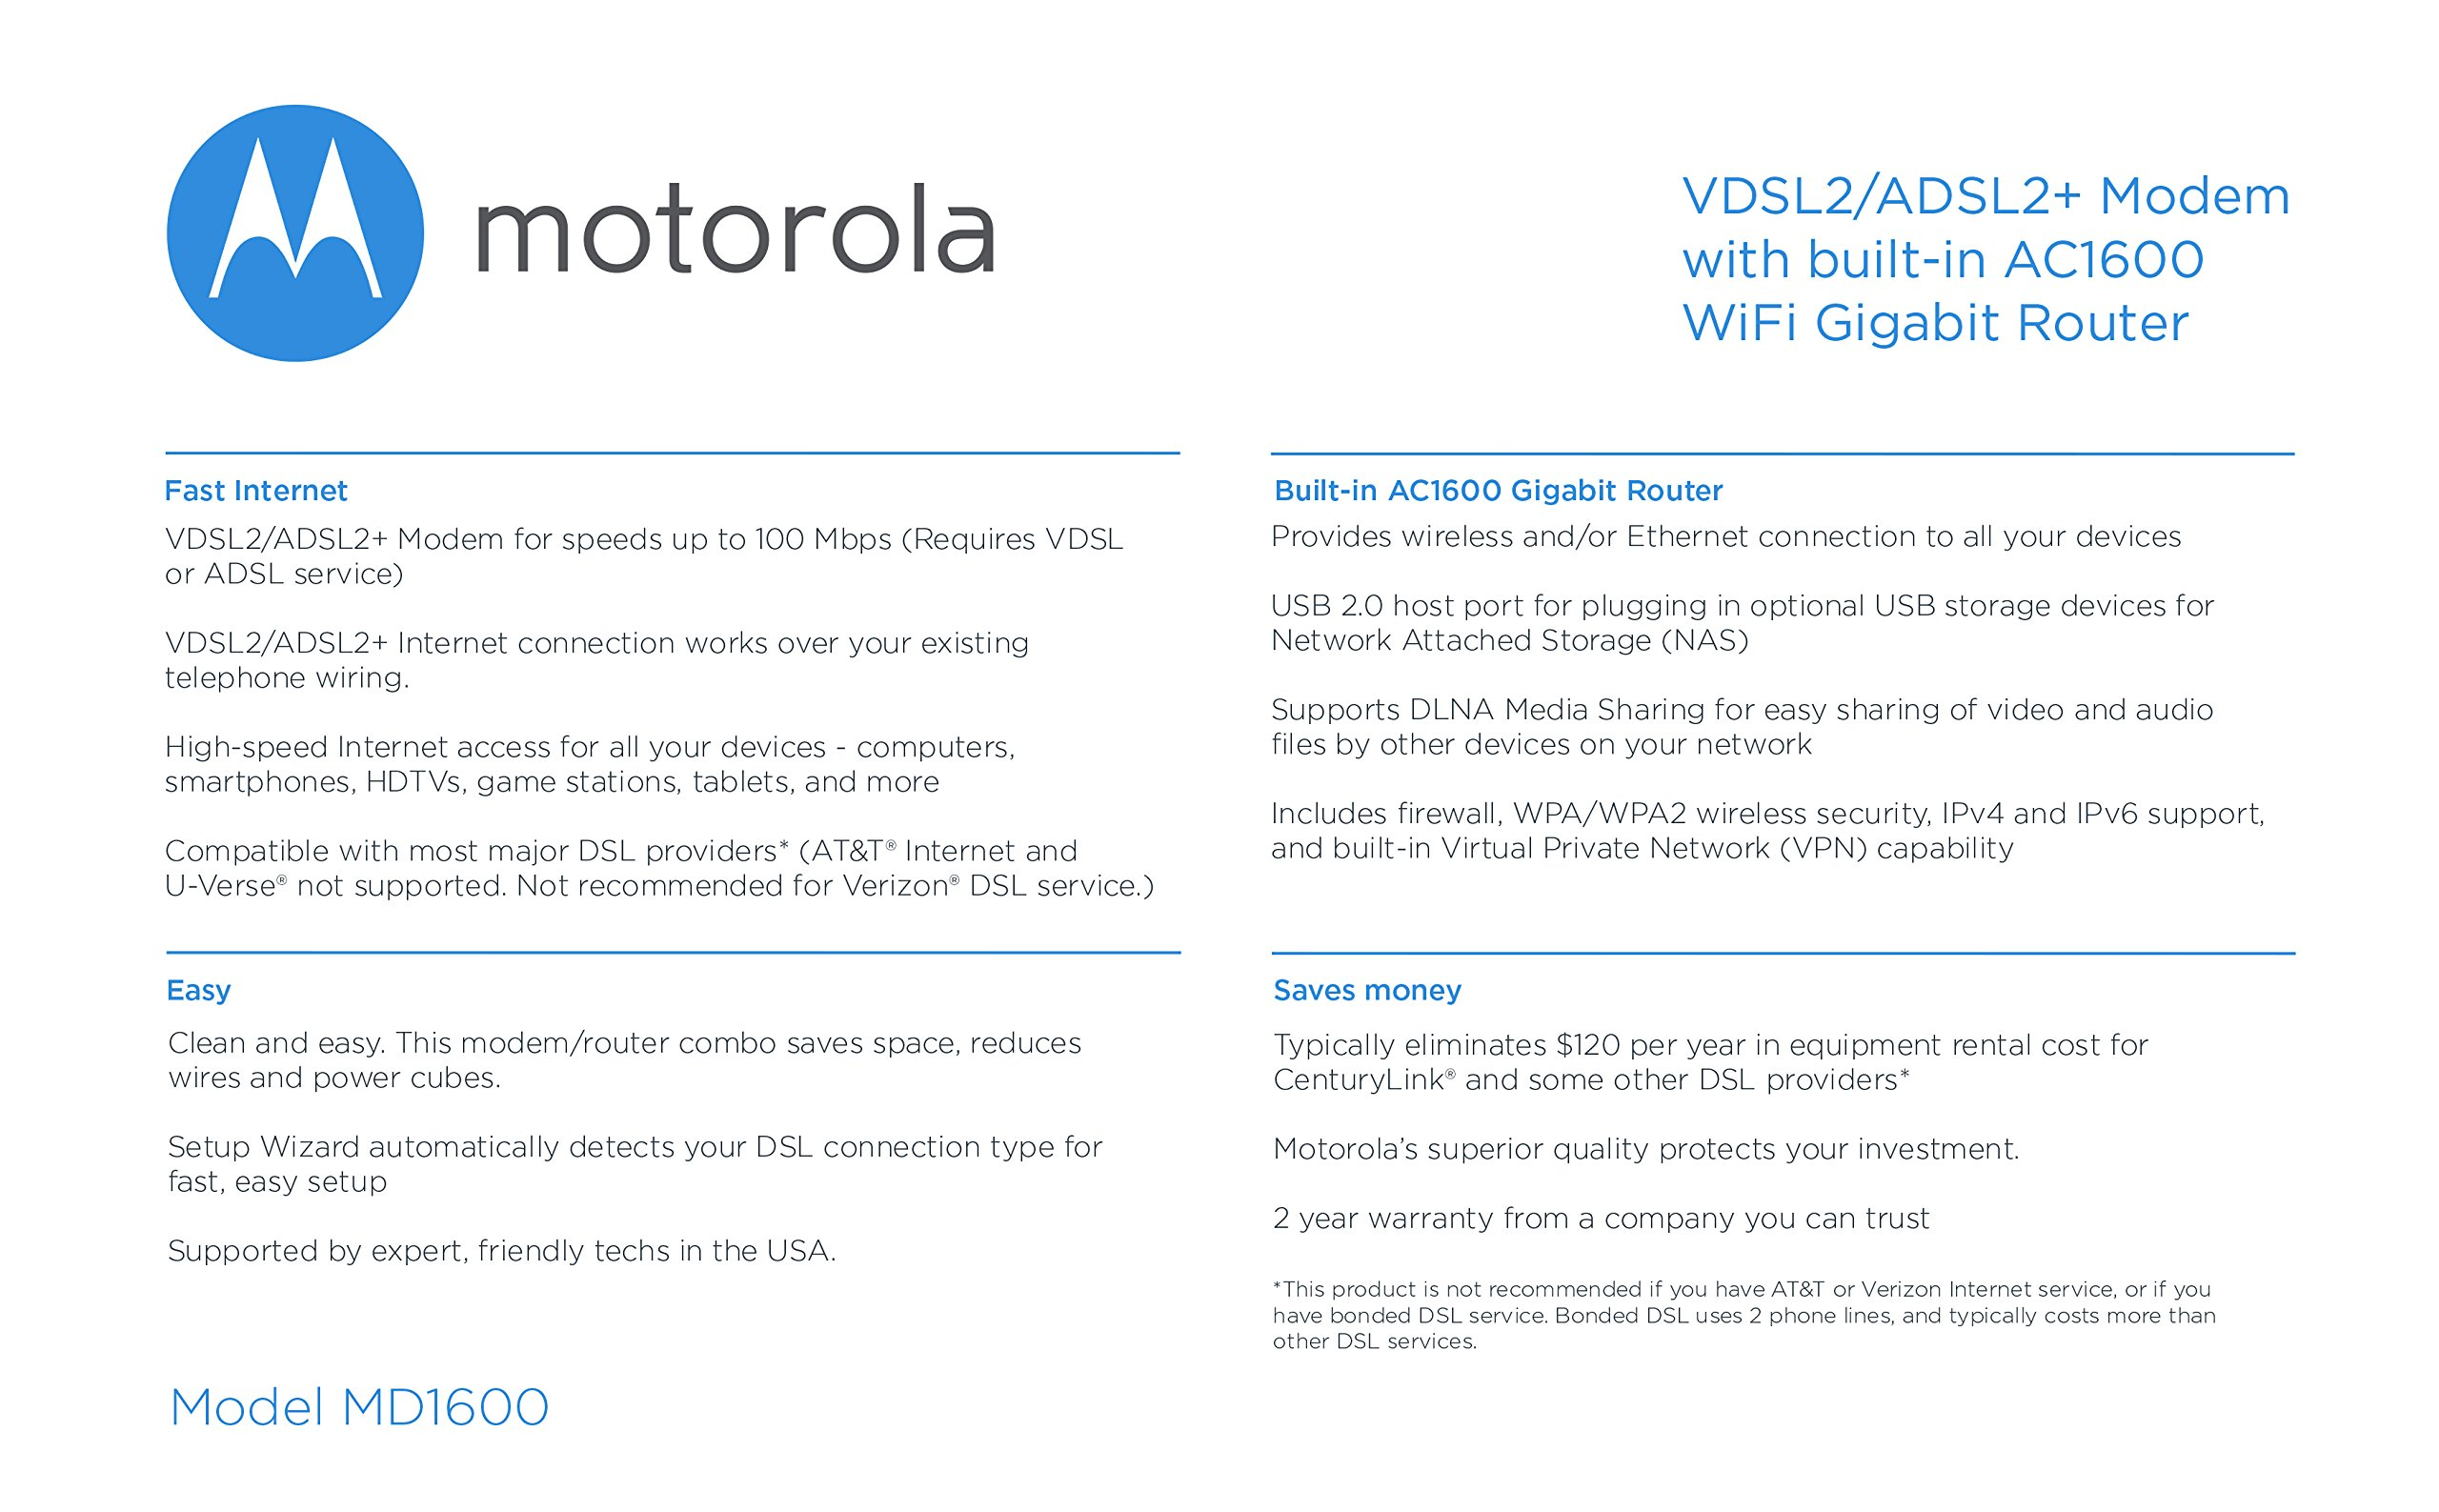 MOTOROLA VDSL2/ADSL2+ Modem + WiFi AC1600 Gigabit Router, Model MD1600, for Non-Bonded, Non-Vectoring DSL from CenturyLink, Frontier, and Some Other DSL Providers 5 IMPORTANT: MODEL MD1600 DOES NOT WORK WITH BONDED VDSL, BONDED ADSL, OR VDSL VECTORING. PLEASE READ THE CHECKLIST in the product images on this page before purchasing this product. If you're still not sure whether you have the right type of DSL service, BE SURE TO ASK YOUR SERVICE PROVIDER BEFORE purchasing this product. MODEL MD1600 IS NEVER COMPATIBLE WITH VERIZON OR AT&T SERVICES. The MD1600 IS NEVER compatible with Comcast, Charter Spectrum, Cox, or other cable services The MD1600 is a great choice for most ADSL and VDSL services from CenturyLink, Frontier, Windstream, TDS Telecom, and Fairpoint. .It combines a VDSL2/ADSL2+ modem with a full-featured AC1600 WiFi Gigabit router to provide fast Internet to all your WiFi and Ethernet devices. DSL services use the telephone wiring in your home. Supplying your own modem typically saves $9.99 in modem rental fees for CenturyLink, and savings vary for other service providers. Built-in router includes four Gigabit Ethernet ports, AC1600 wireless, a firewall, WPA/WPA2 wireless security, IPv4 and IPv6 support, and Virtual Private Network (VPN) capability. You can plug a USB storage device into the MD1600's USB 2.0 host port for Network Attached Storage (NAS) which supports DLNA Media Sharing.